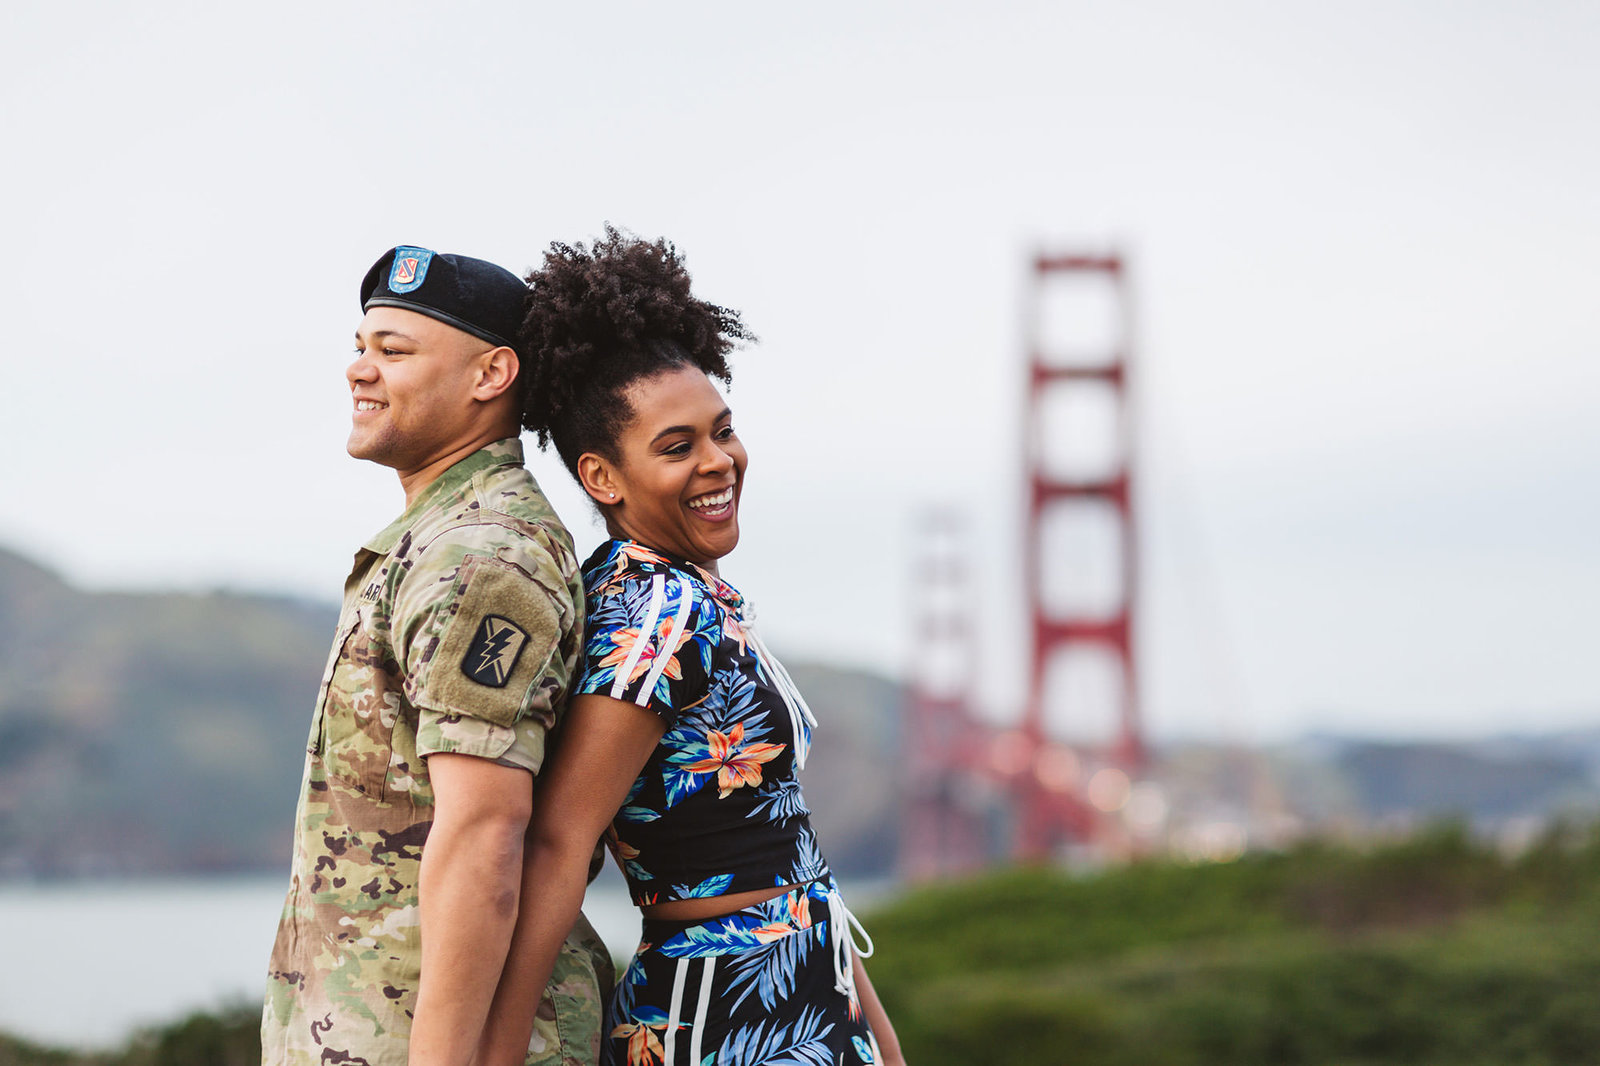 dancing meets military theme for this couple standing back to back with the golden gate bridge behind them